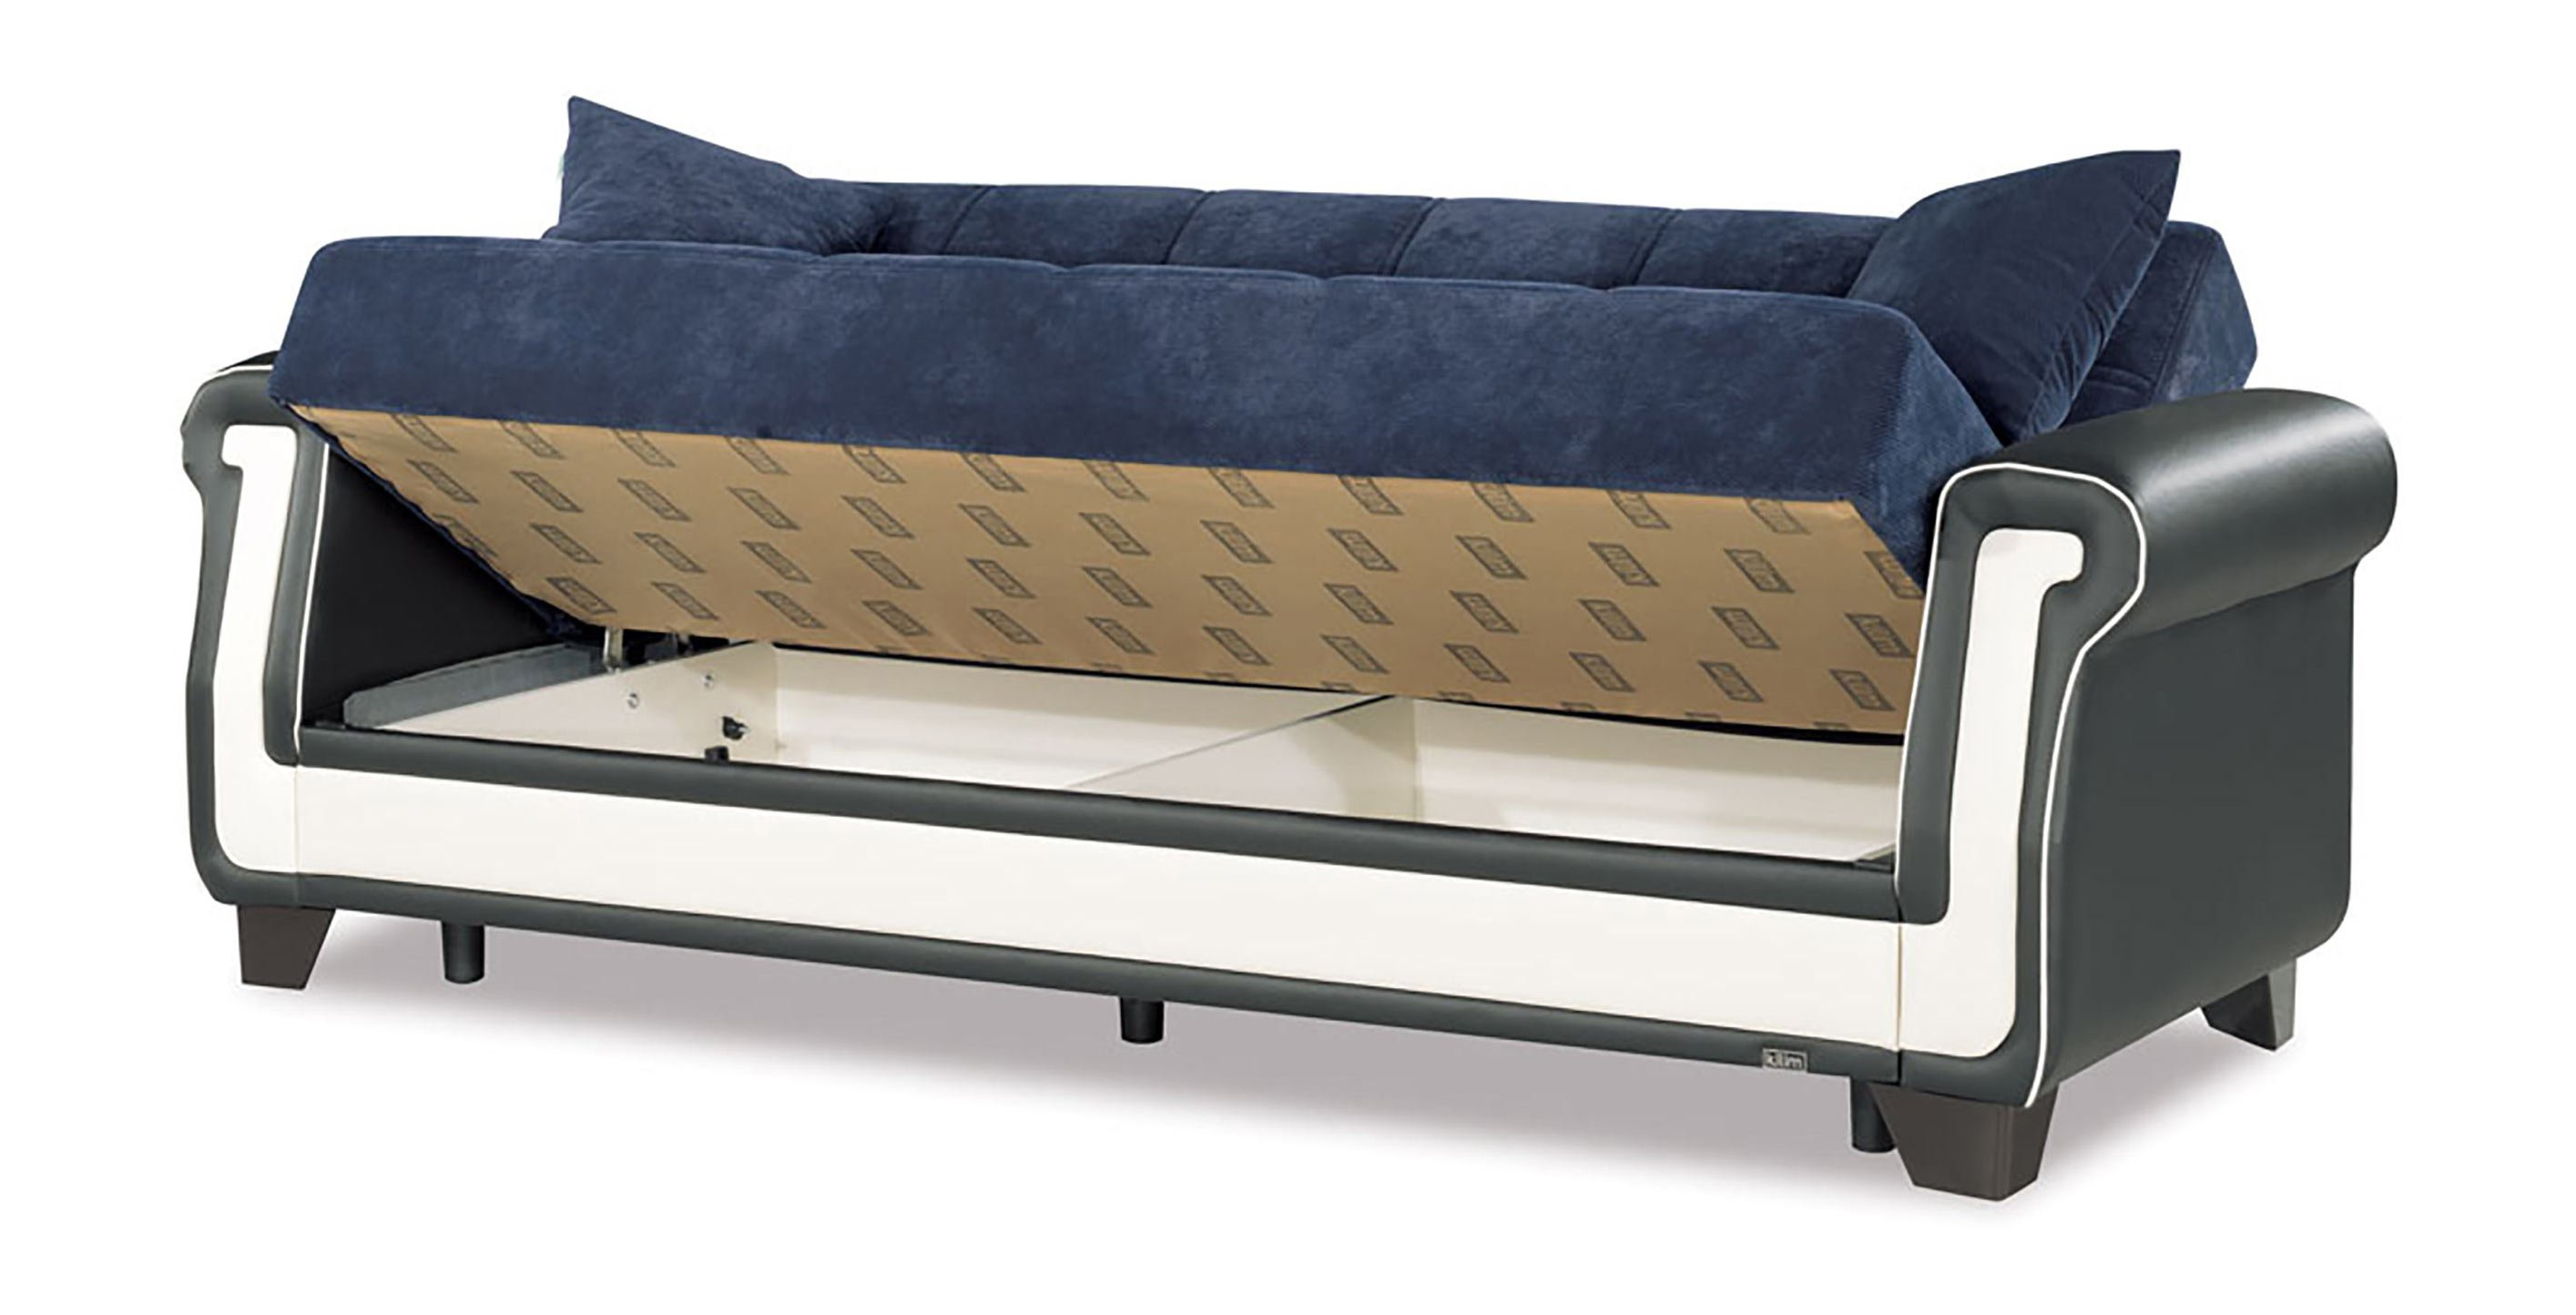 Proline Blue Convertible Sofa Bed by Casamode